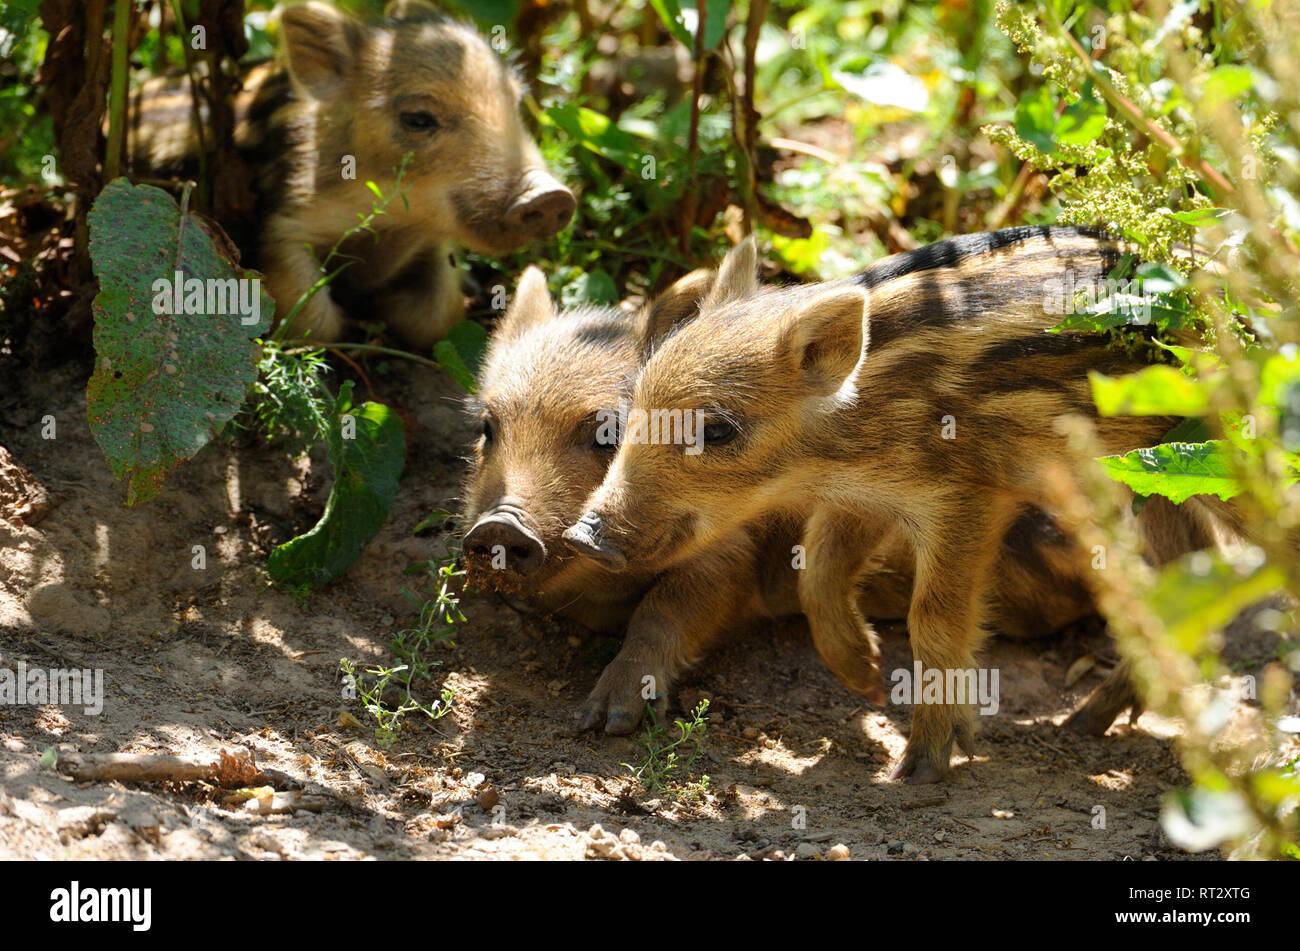 Pigs, real pigs, young wild boars, cloven-hoofed animals, sow, making a mess, black smock, black game, pig, pigs, Suckel, Sus scrofa scrofa, mammals,  - Stock Image